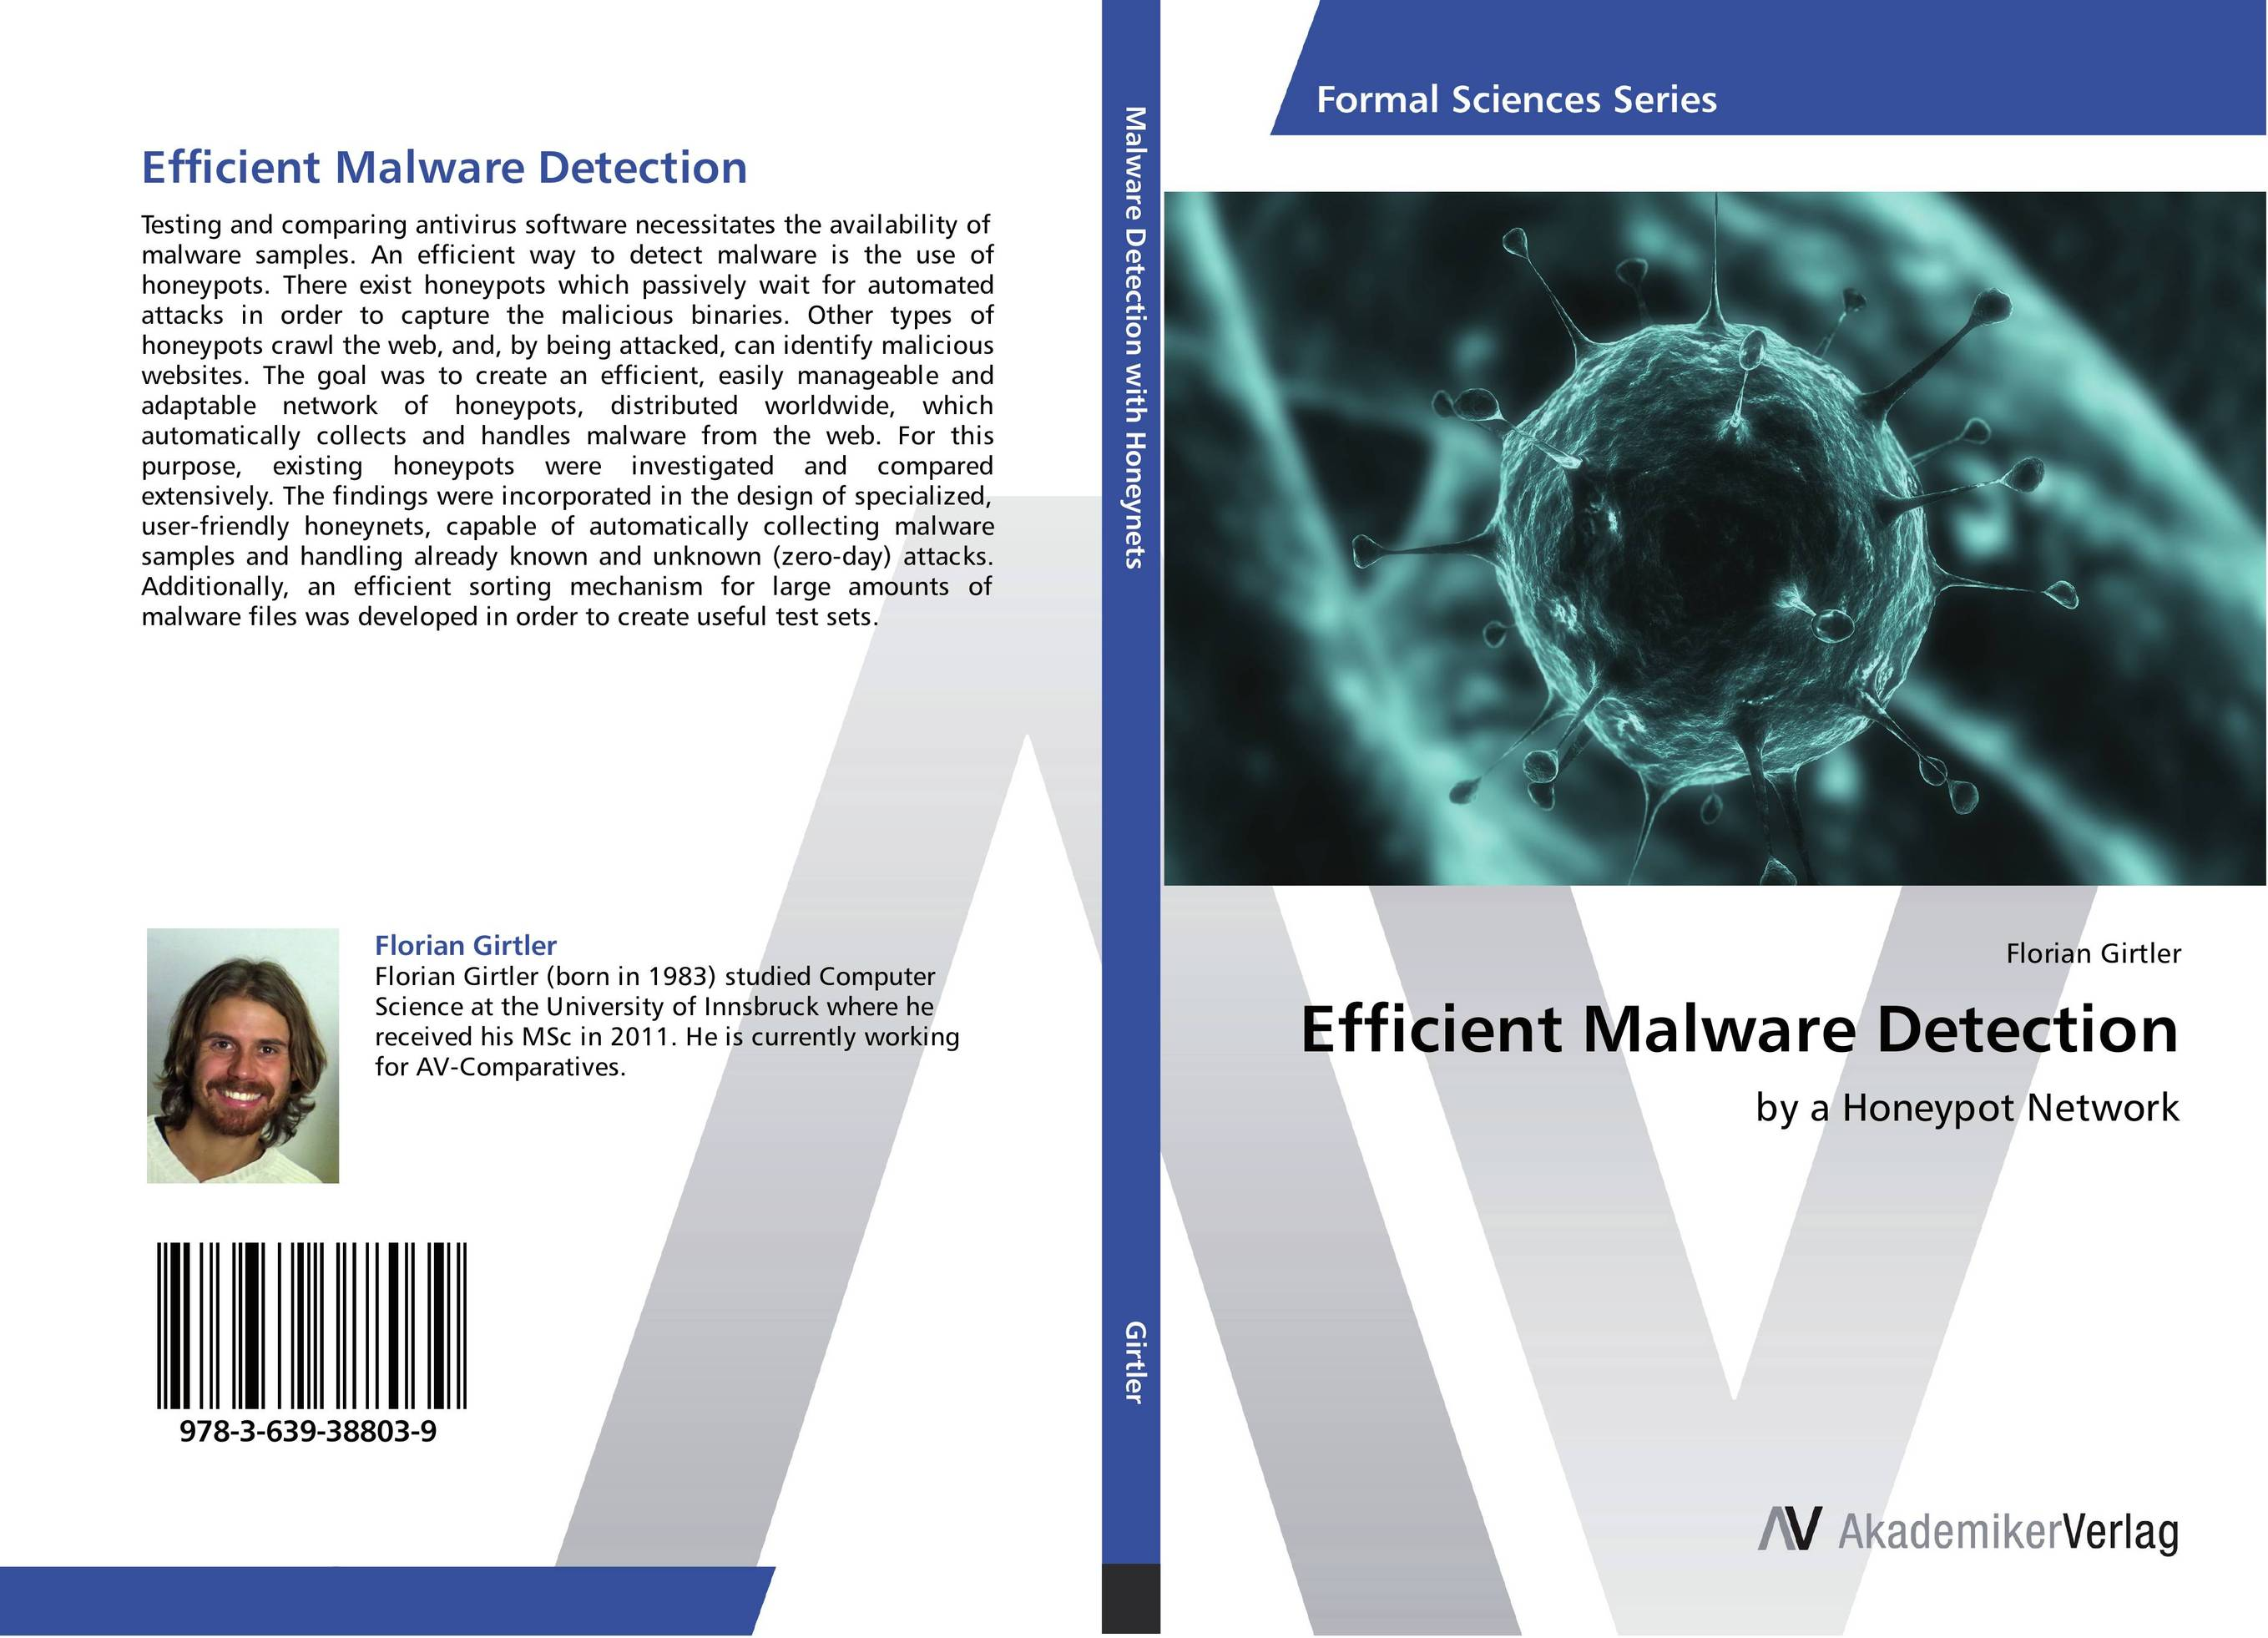 Efficient Malware Detection phishing attacks and detection